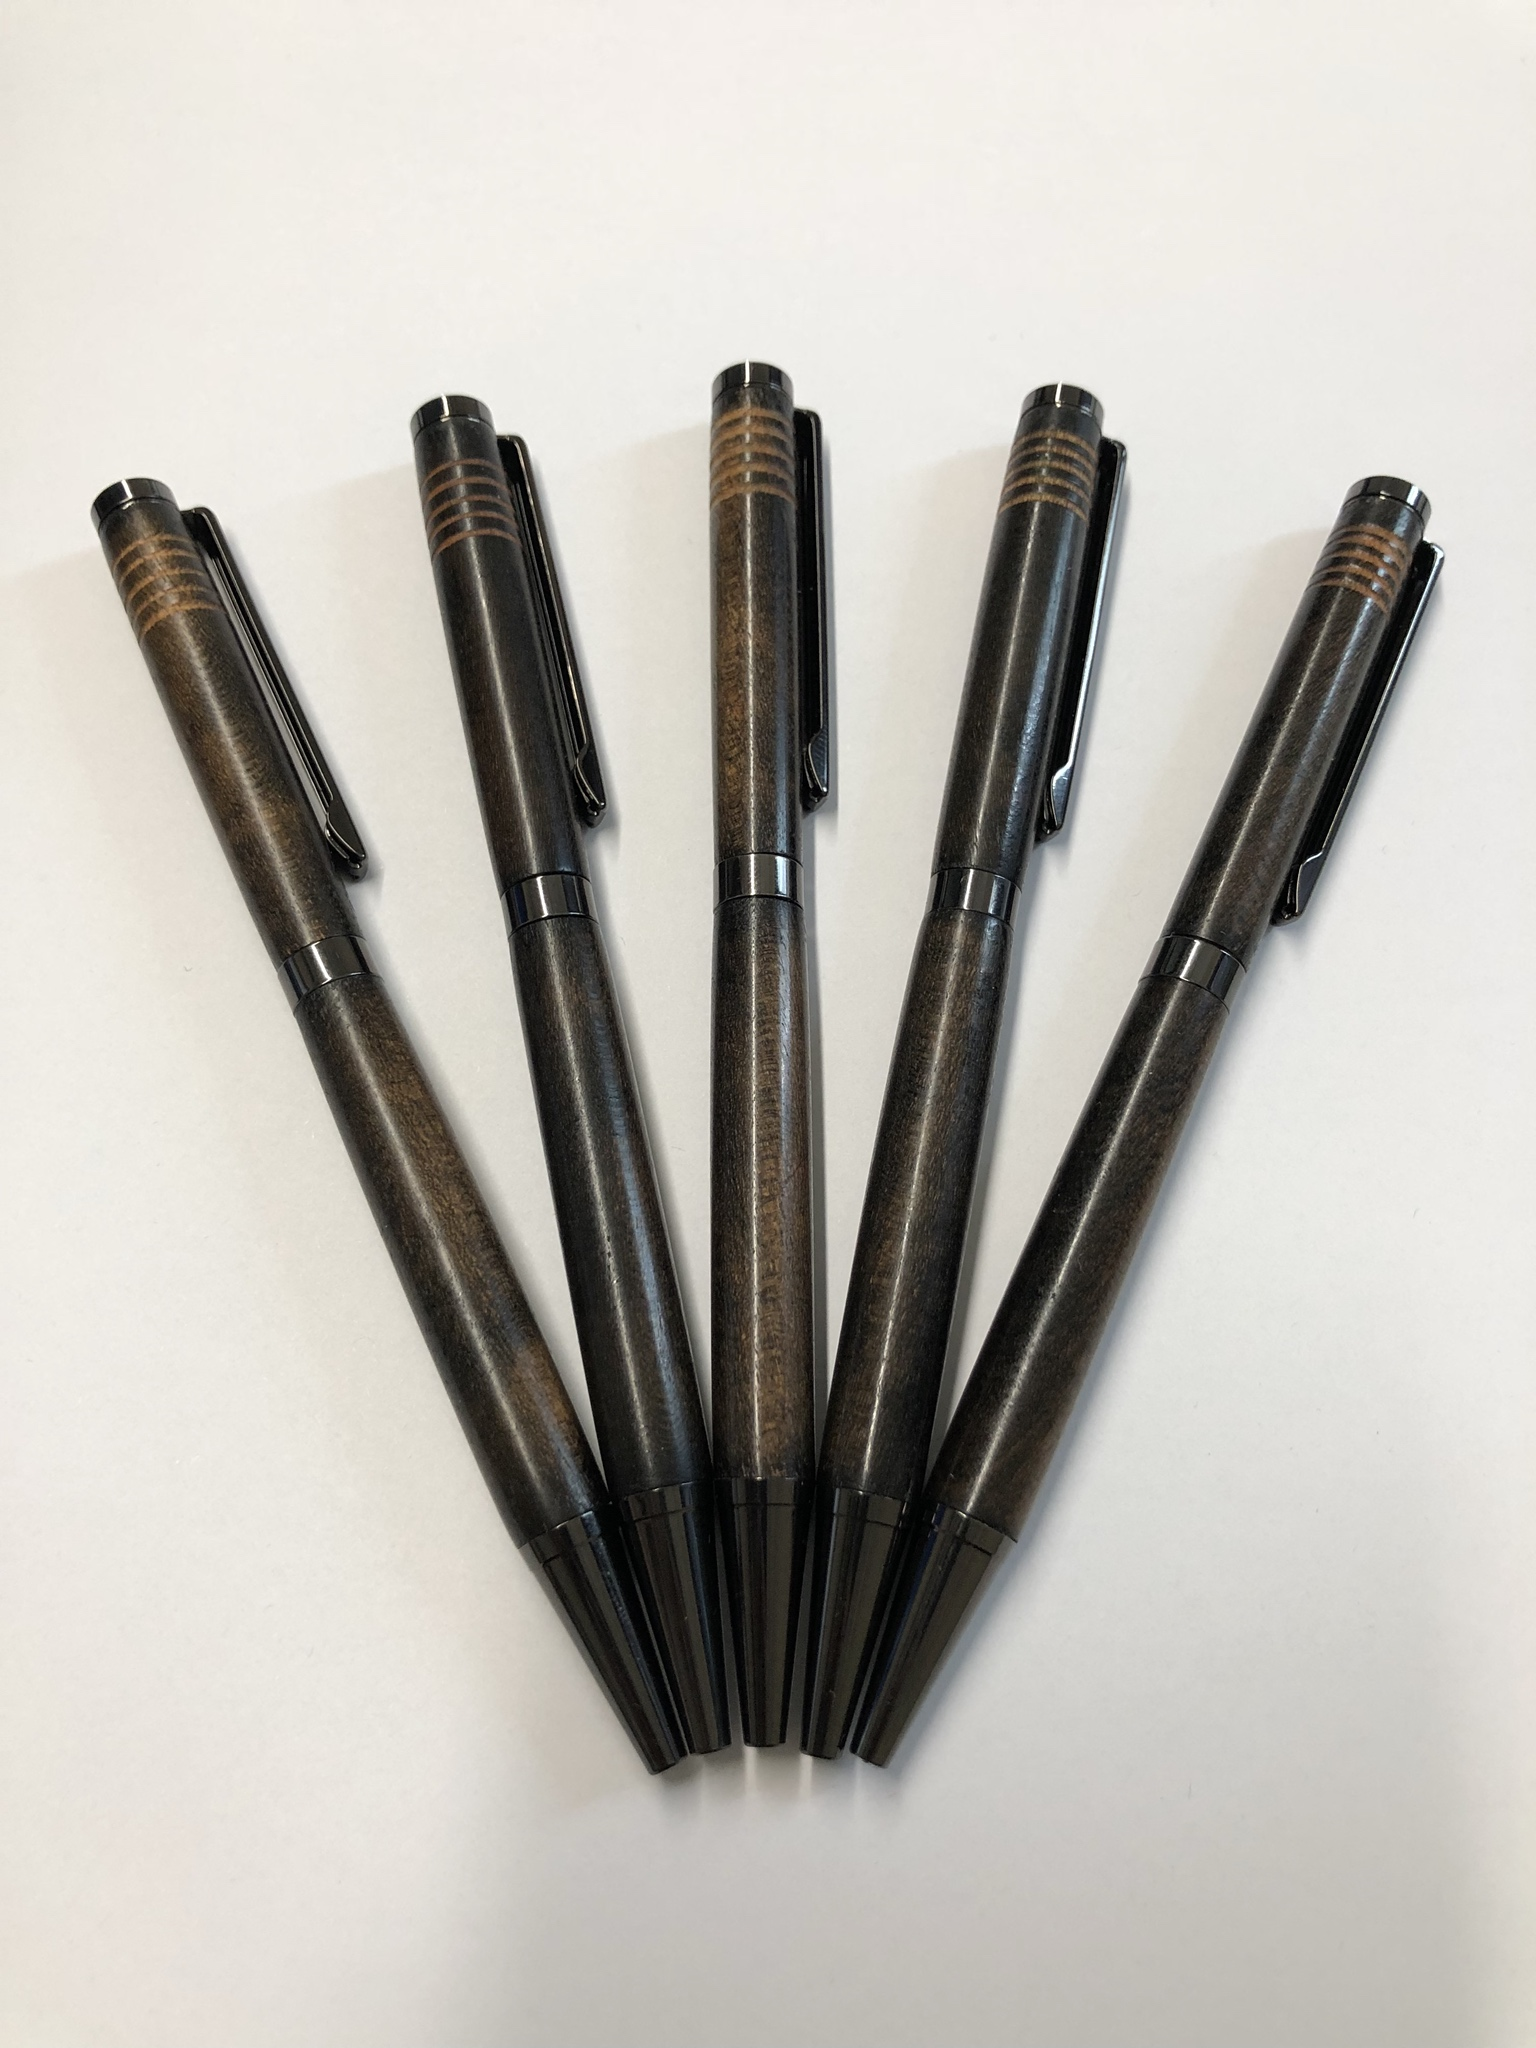 Ebonized Cherry Pens